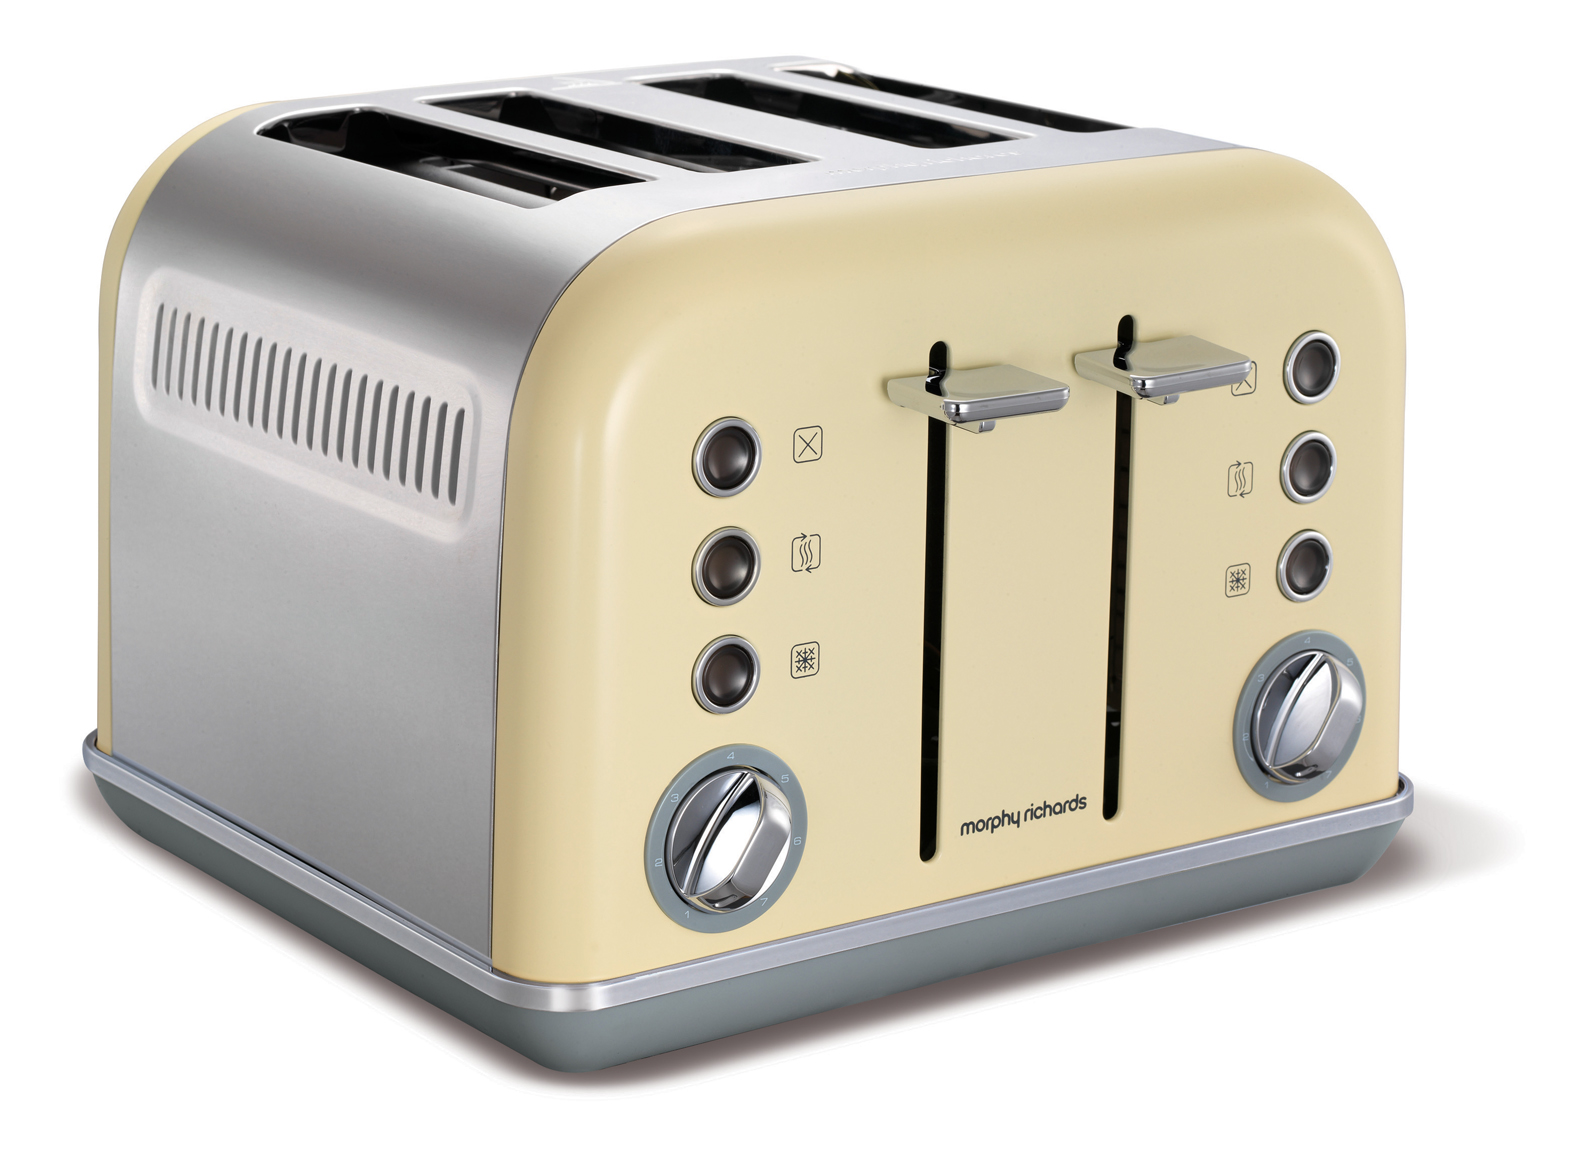 morphy richards toaster accents 4 toastkammern variable schlitzbreite. Black Bedroom Furniture Sets. Home Design Ideas